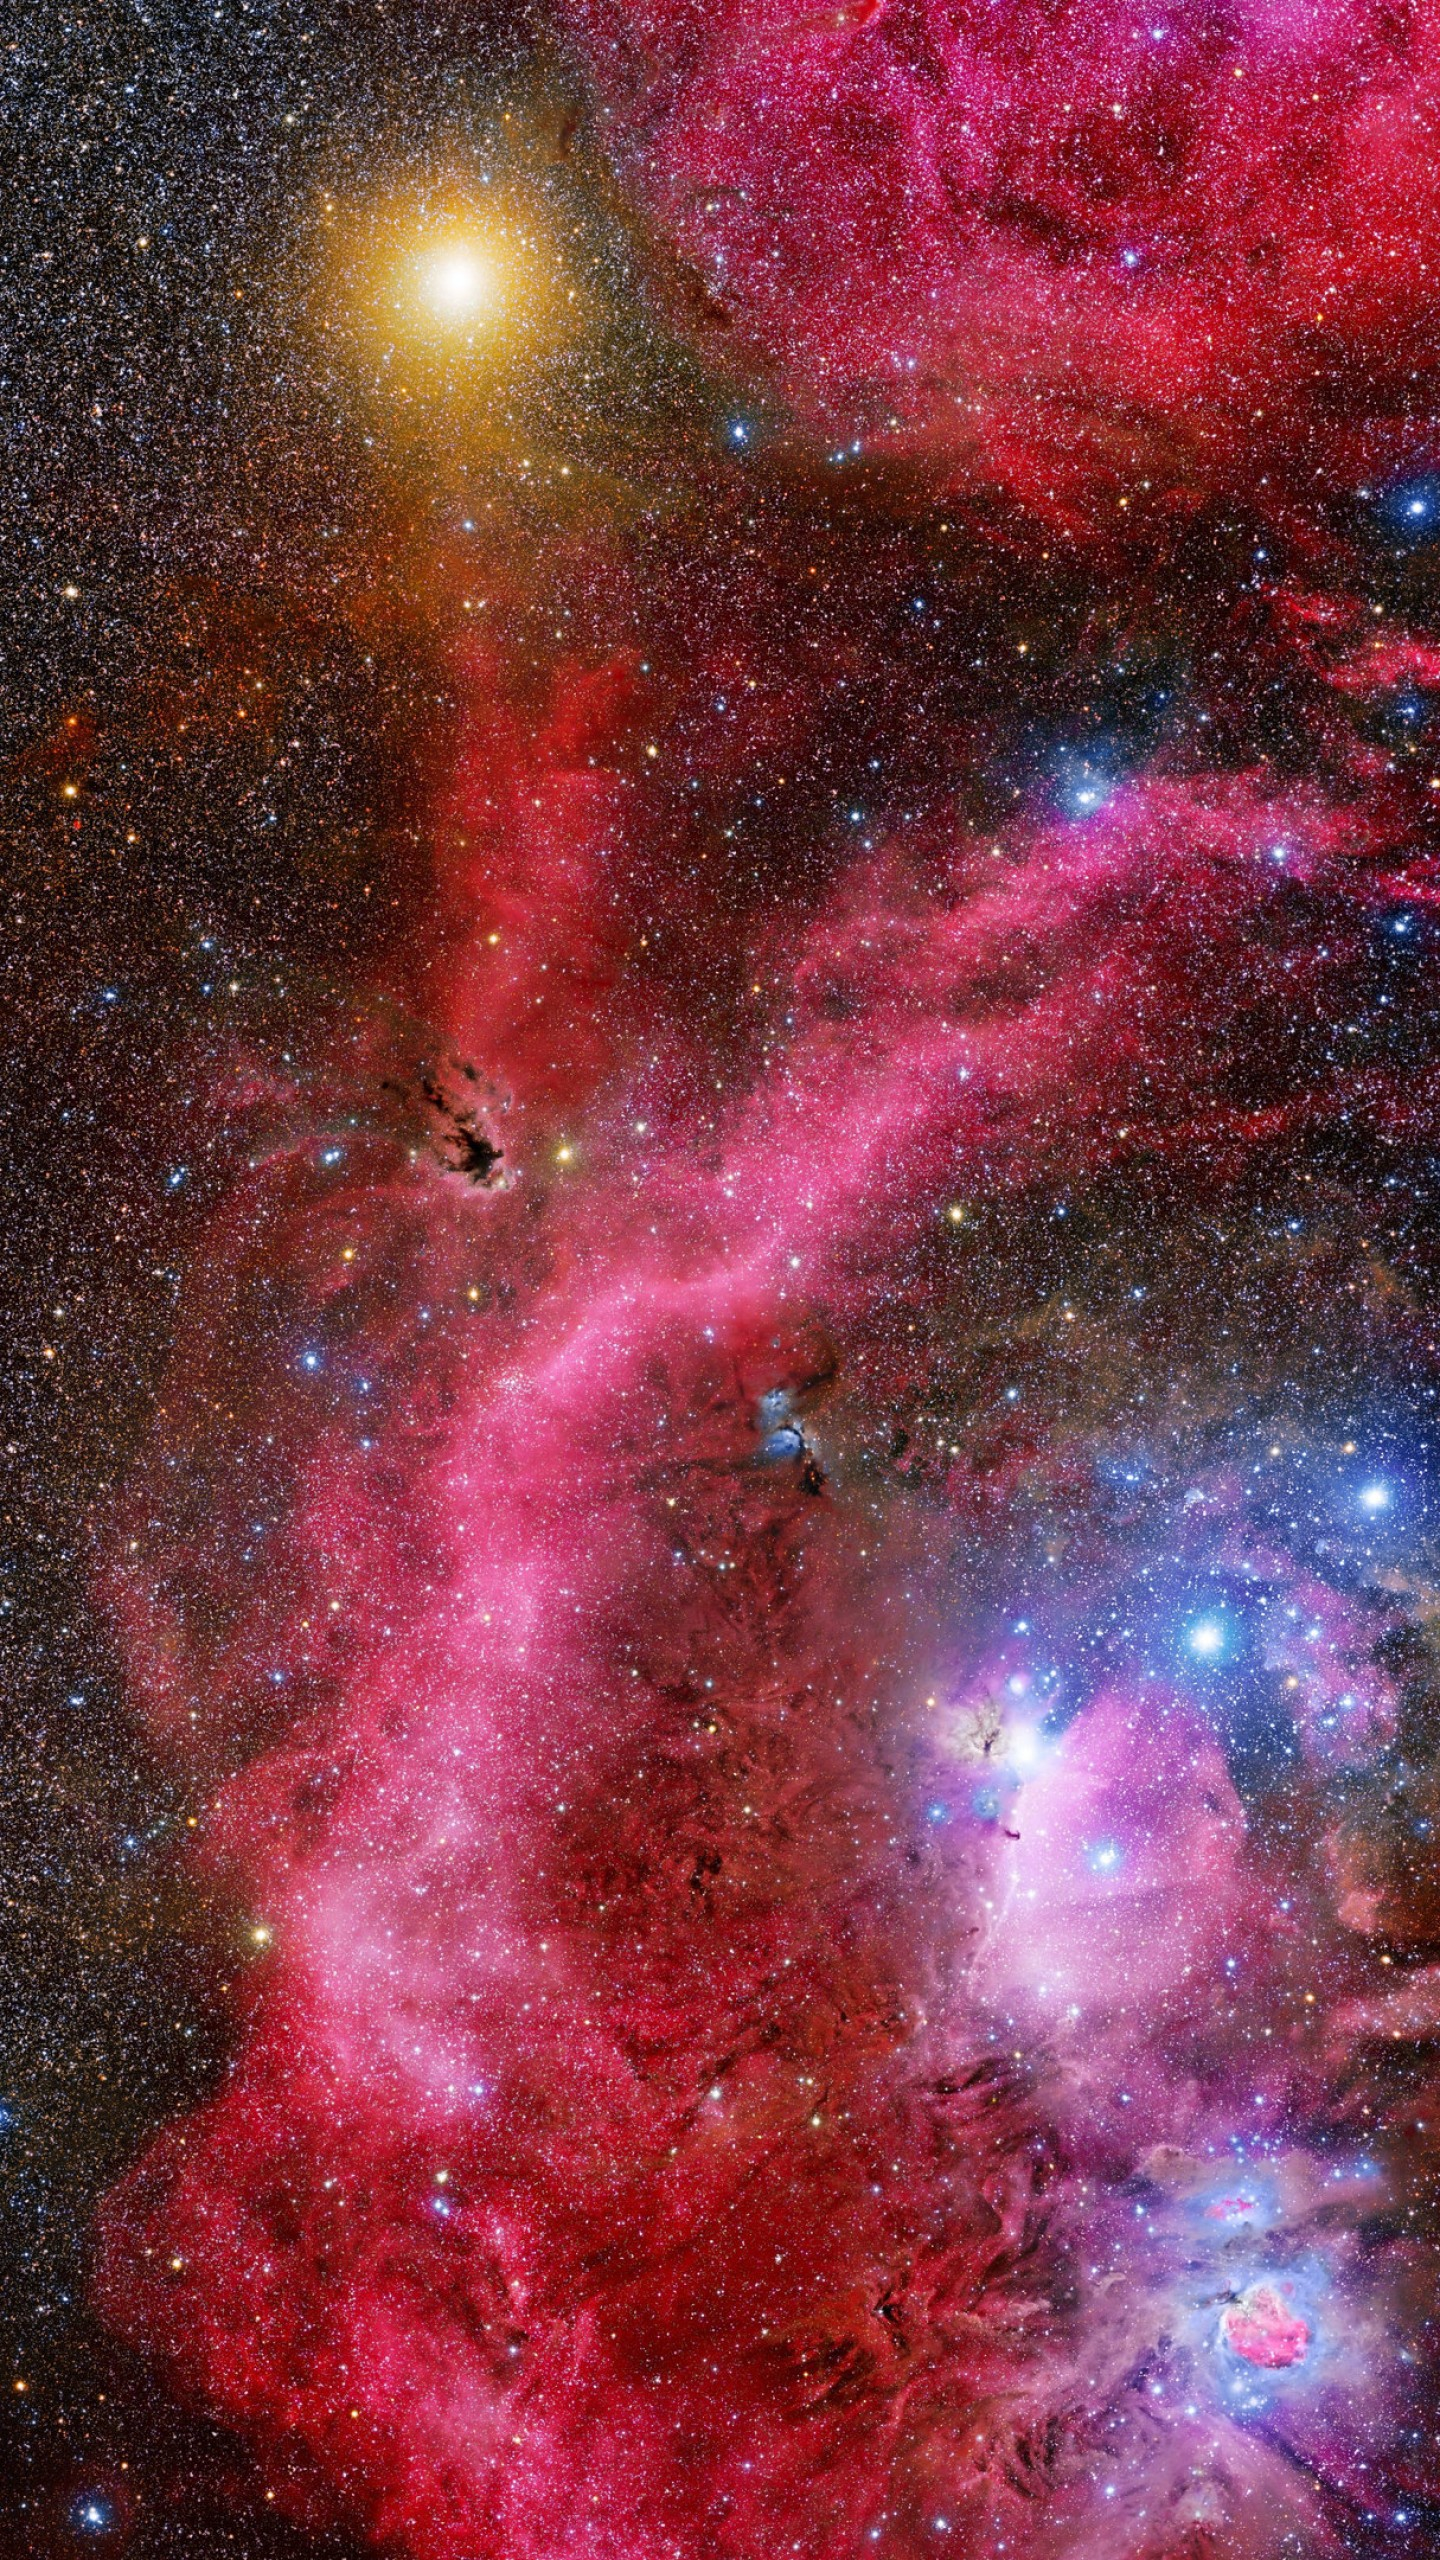 Wallpaper galaxy stars orion 4k space 18275 - Wallpaper galaxy 4k ...